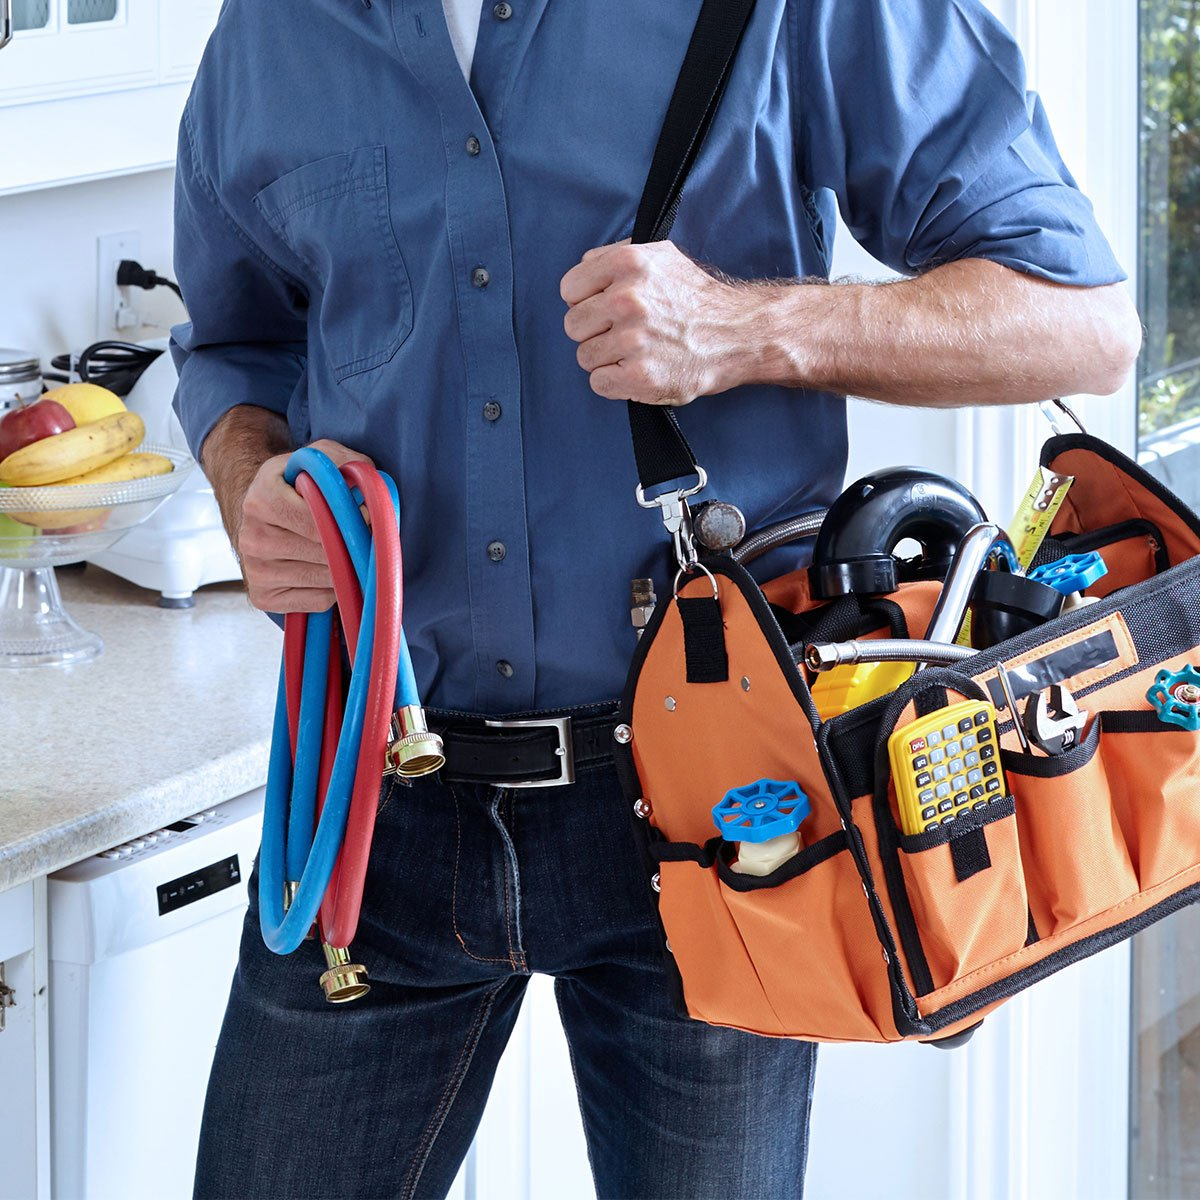 Plumber carrying plumbing tool kit and pipes